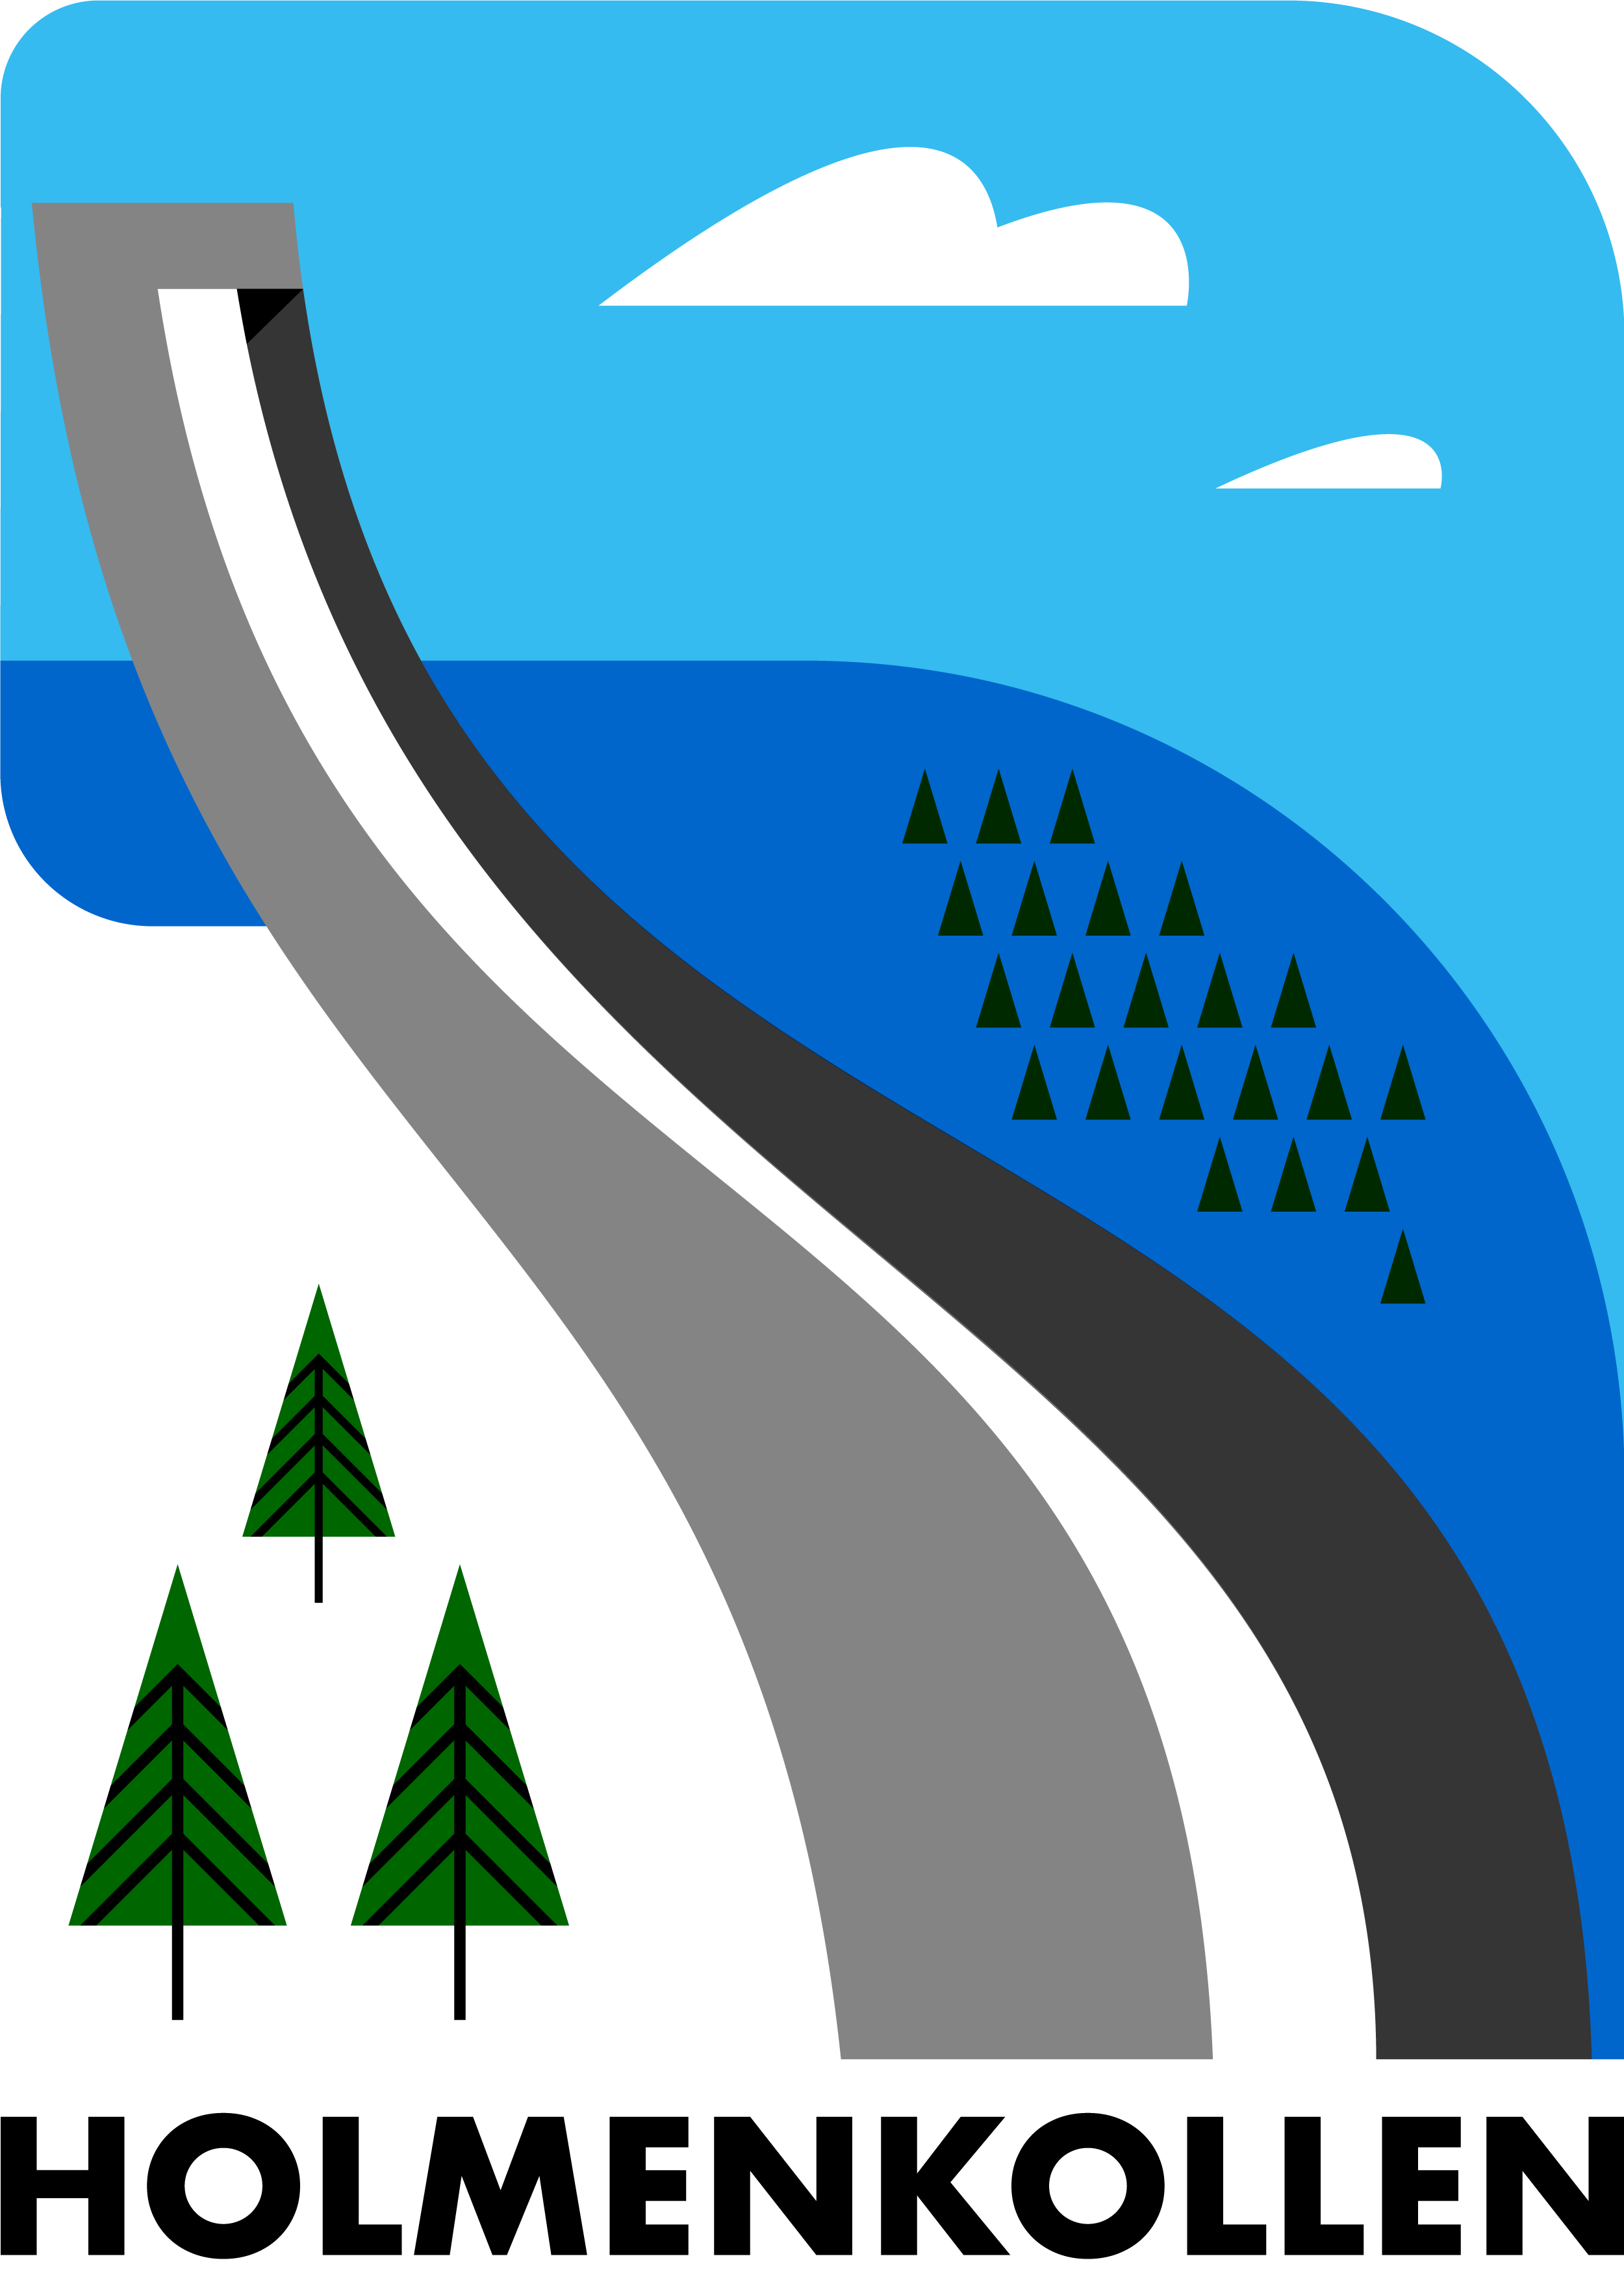 Holmenkollen Ski Jump, Oslo - A selection from my ongoing Illustrated Norway series.